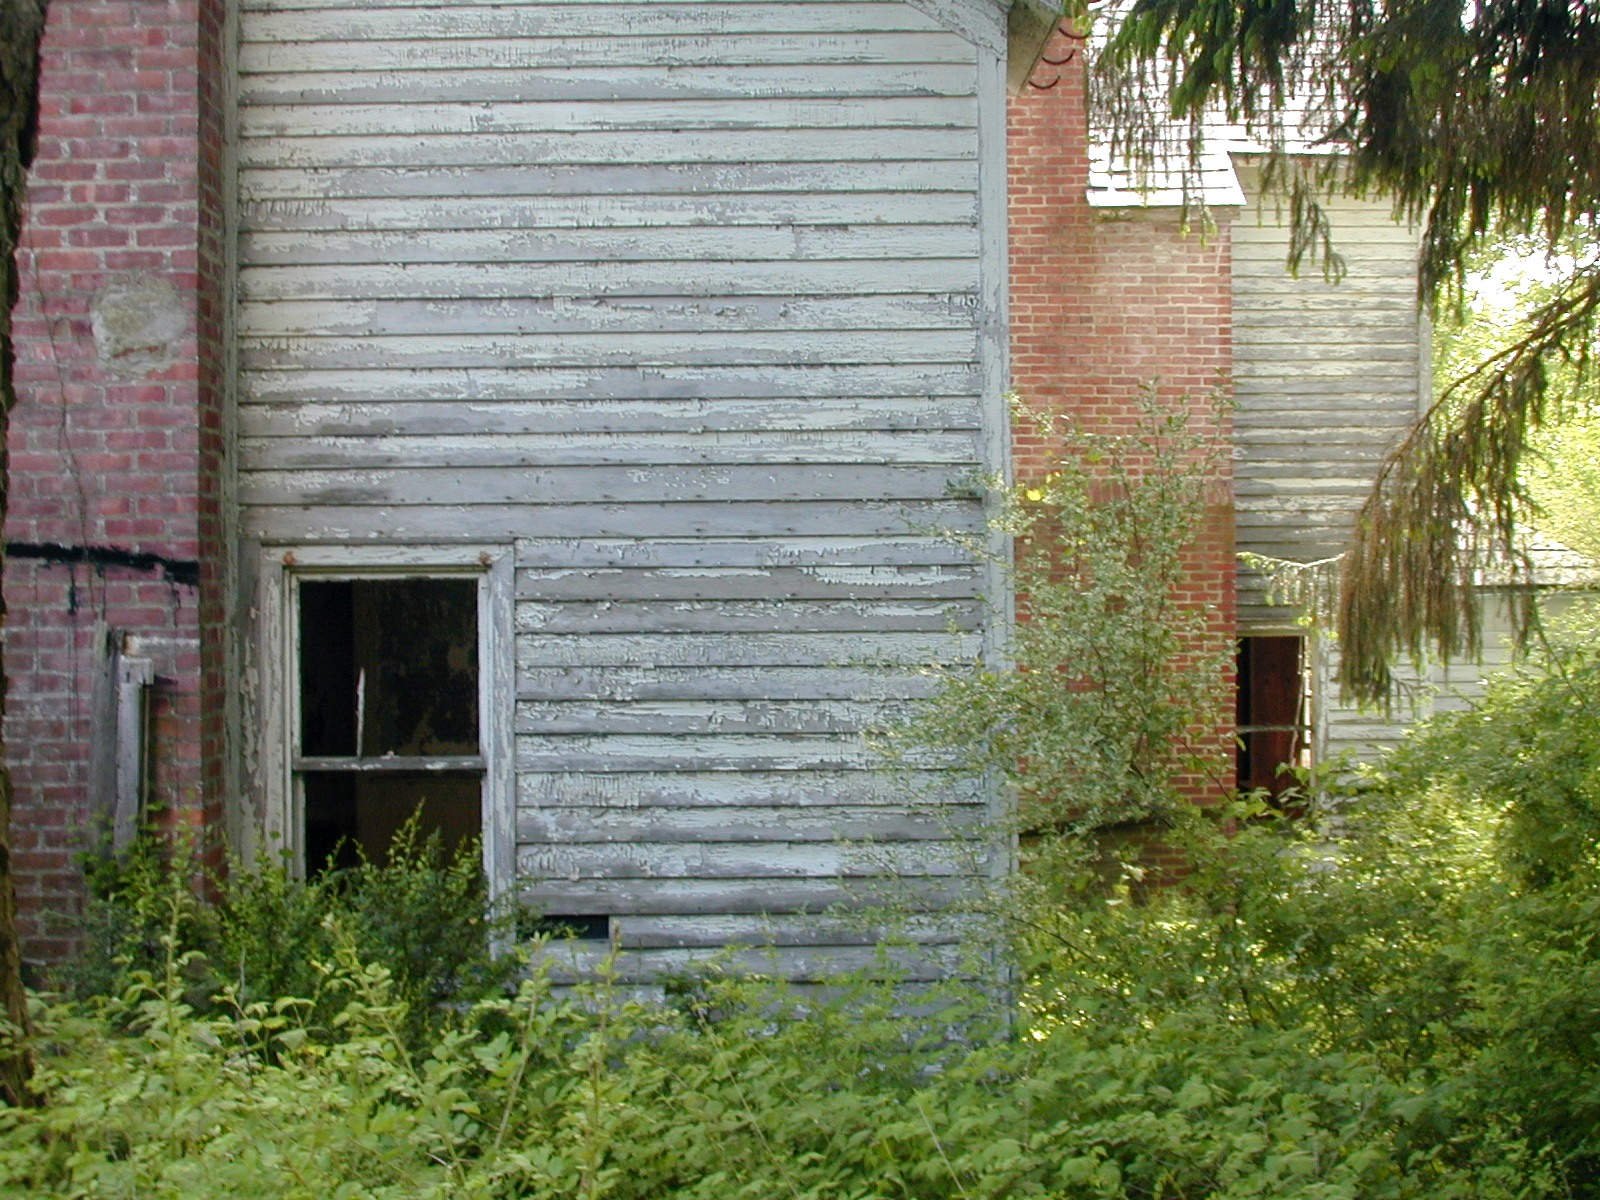 Right rear view of the Depue farmhouse